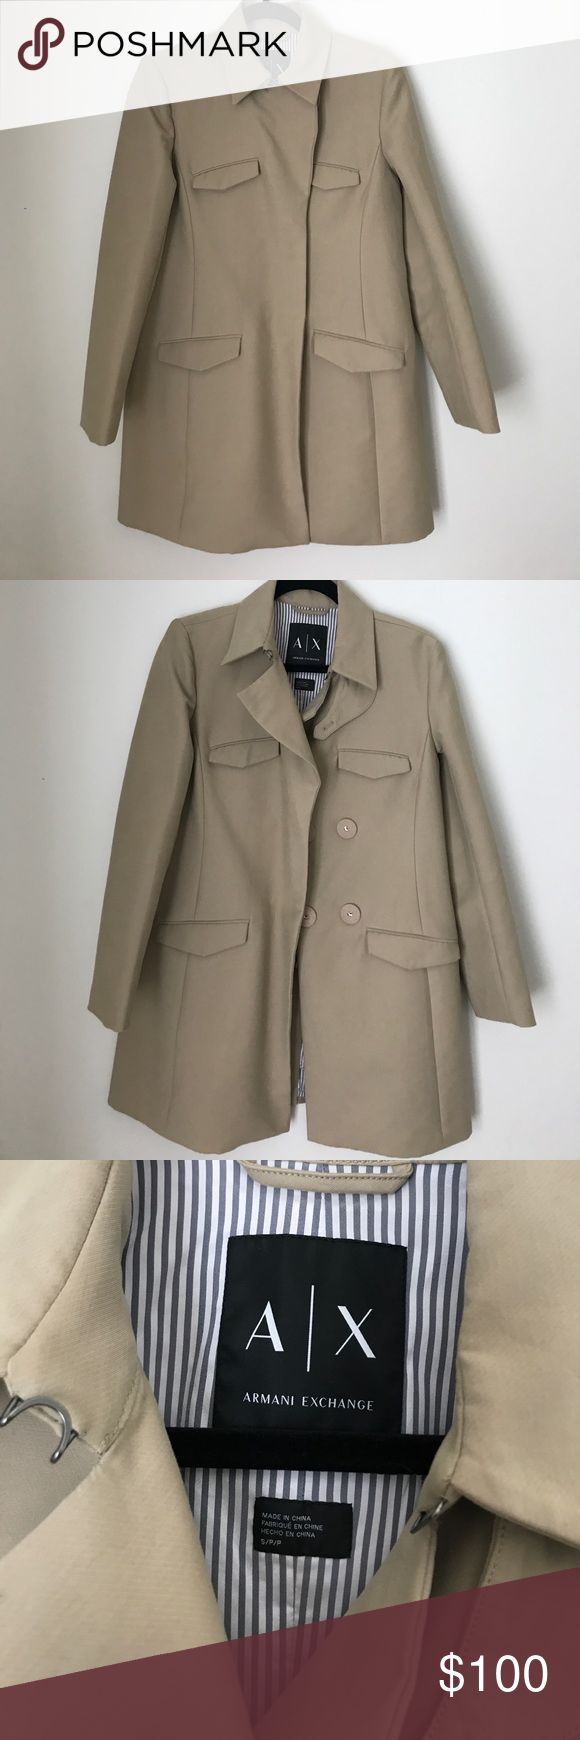 Armani Exchange Coat Very good condition. Fully lined. A/X Armani Exchange Jackets & Coats